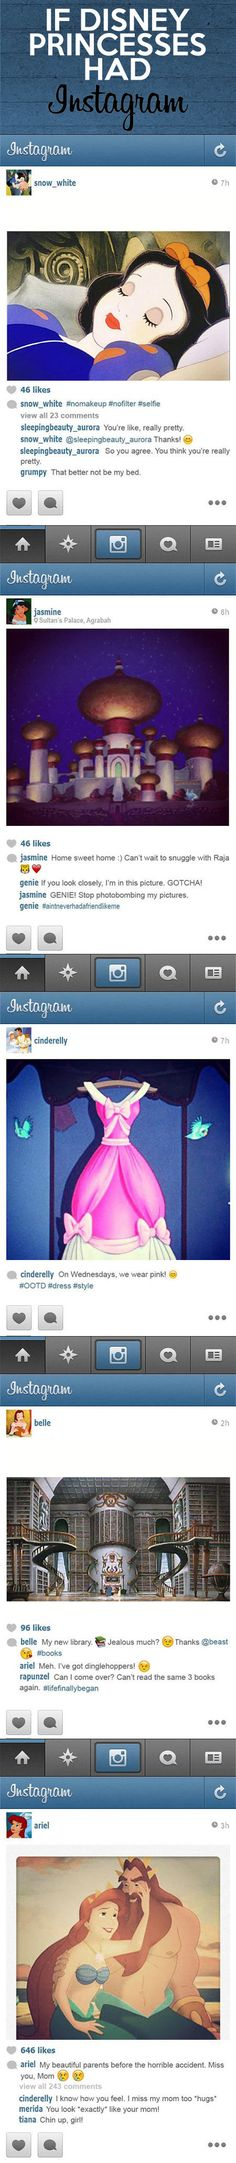 If Disney Princesses Had Instagram. Love this!! Especially the mean girls references